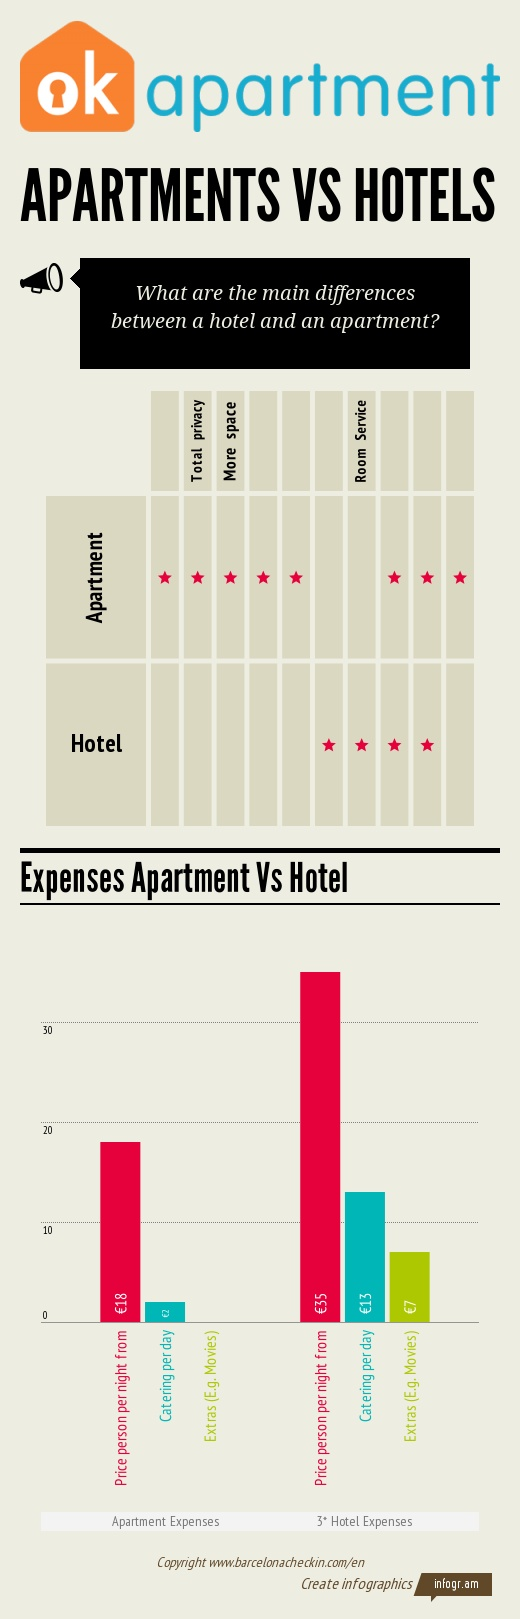 Most people assume that the best accommodation for them is a hotel, but in some cases, you may find that an apartment is better for you. Here is a comparison of the two types of accommodation.